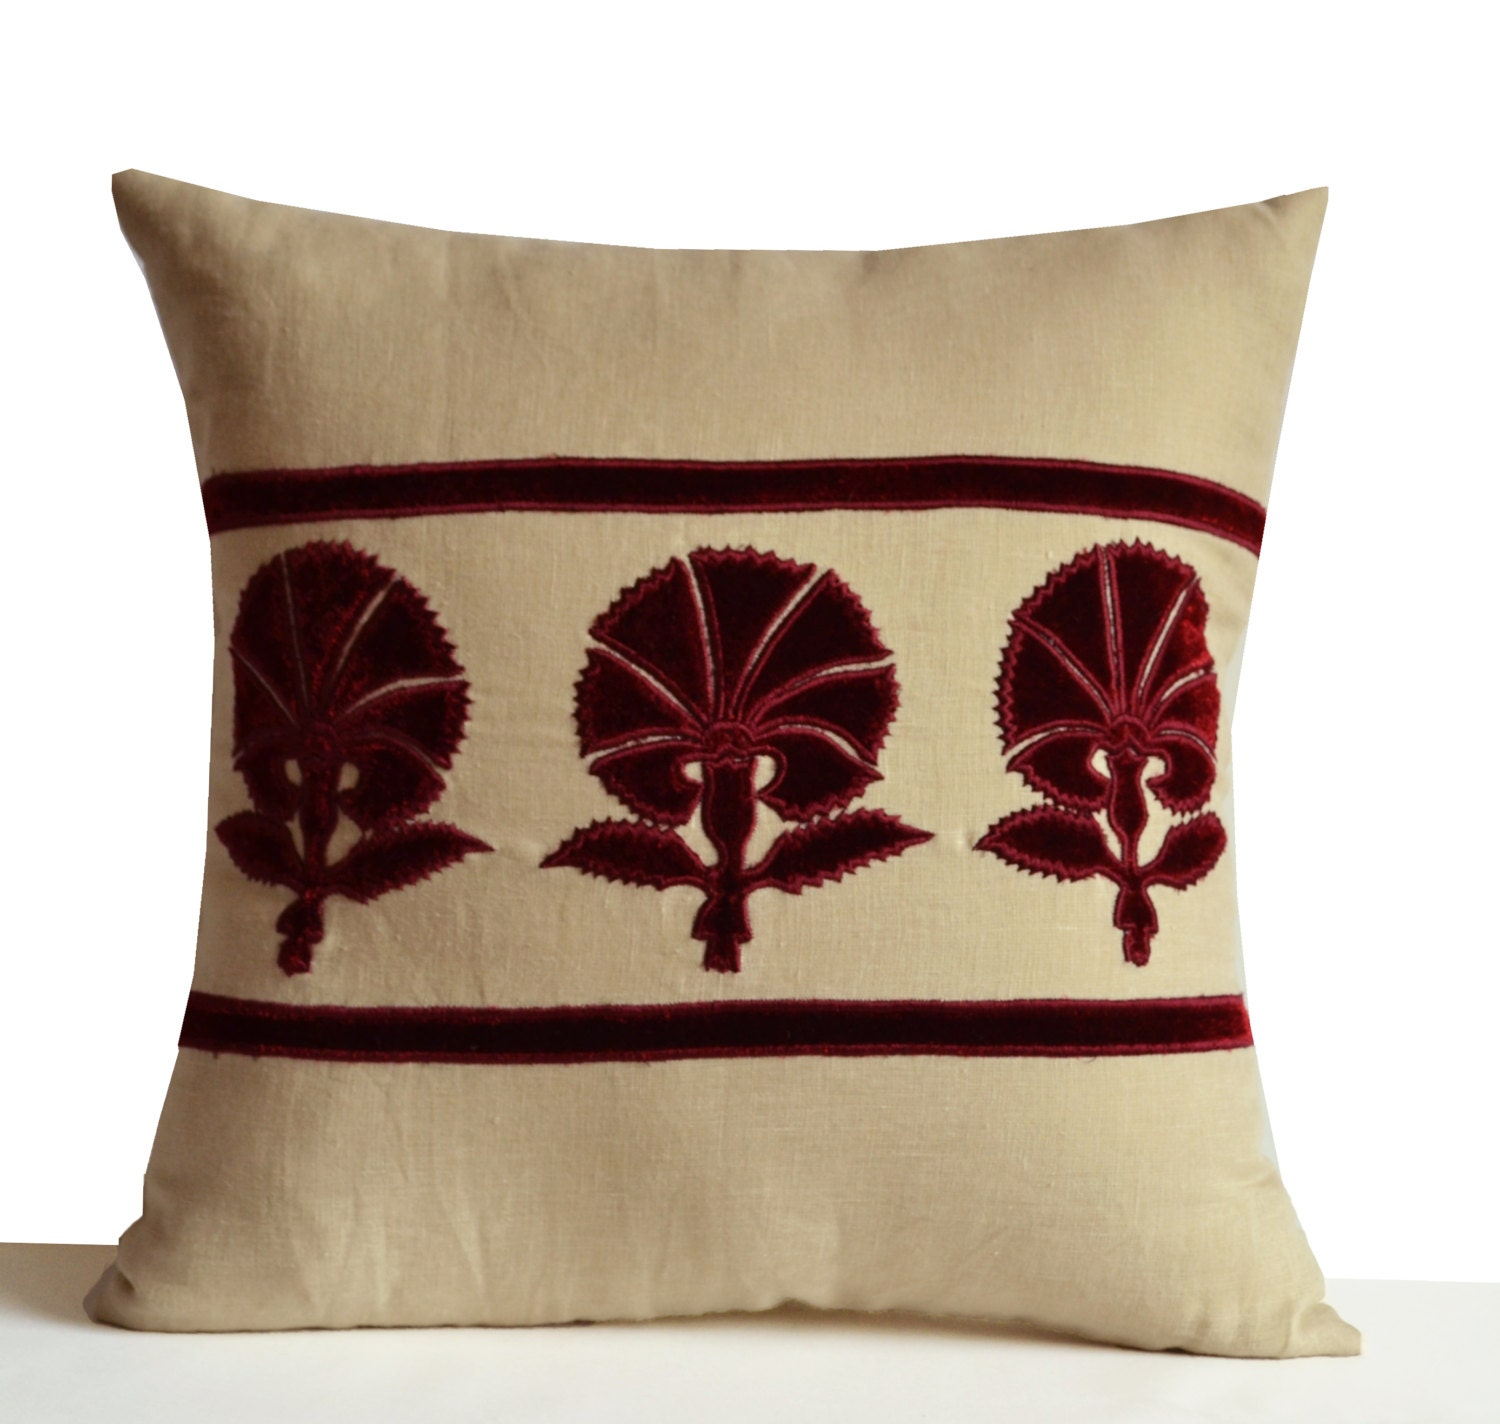 Decorative Throw Pillow Grey Beige Linen with Deep Red Velvet